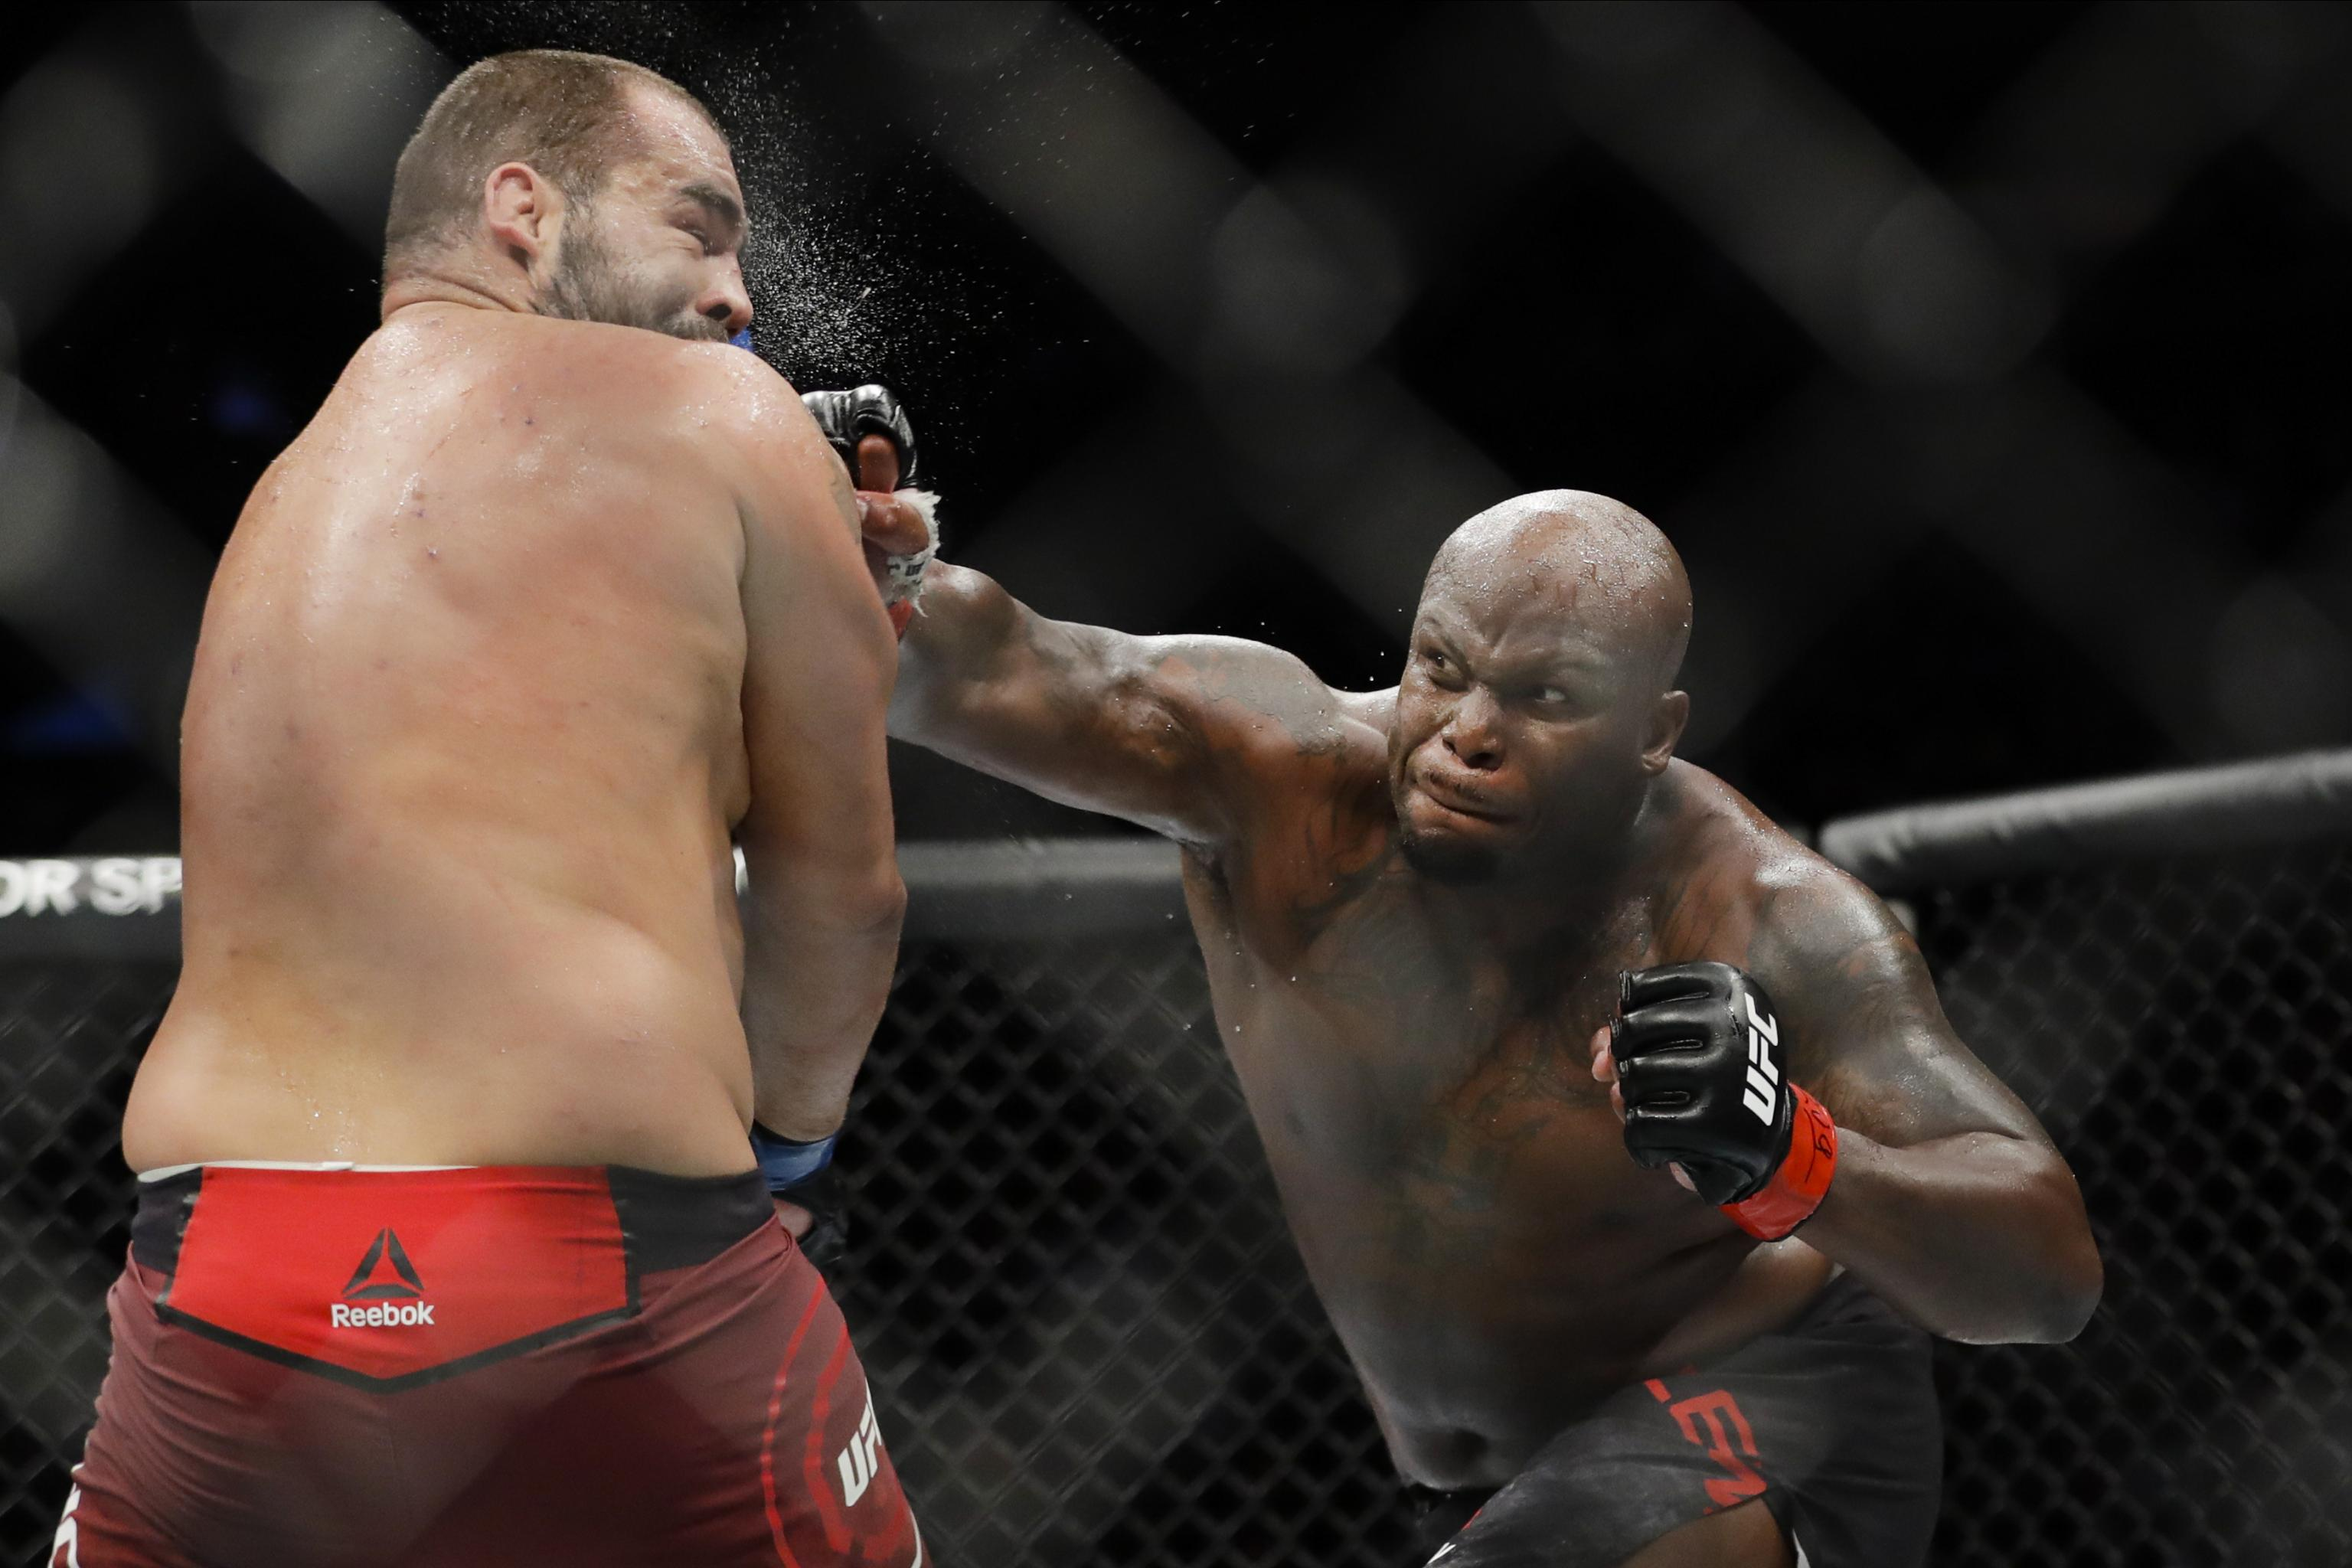 Ufc 162 betting predictions nba what does sw stand for in betting what is su